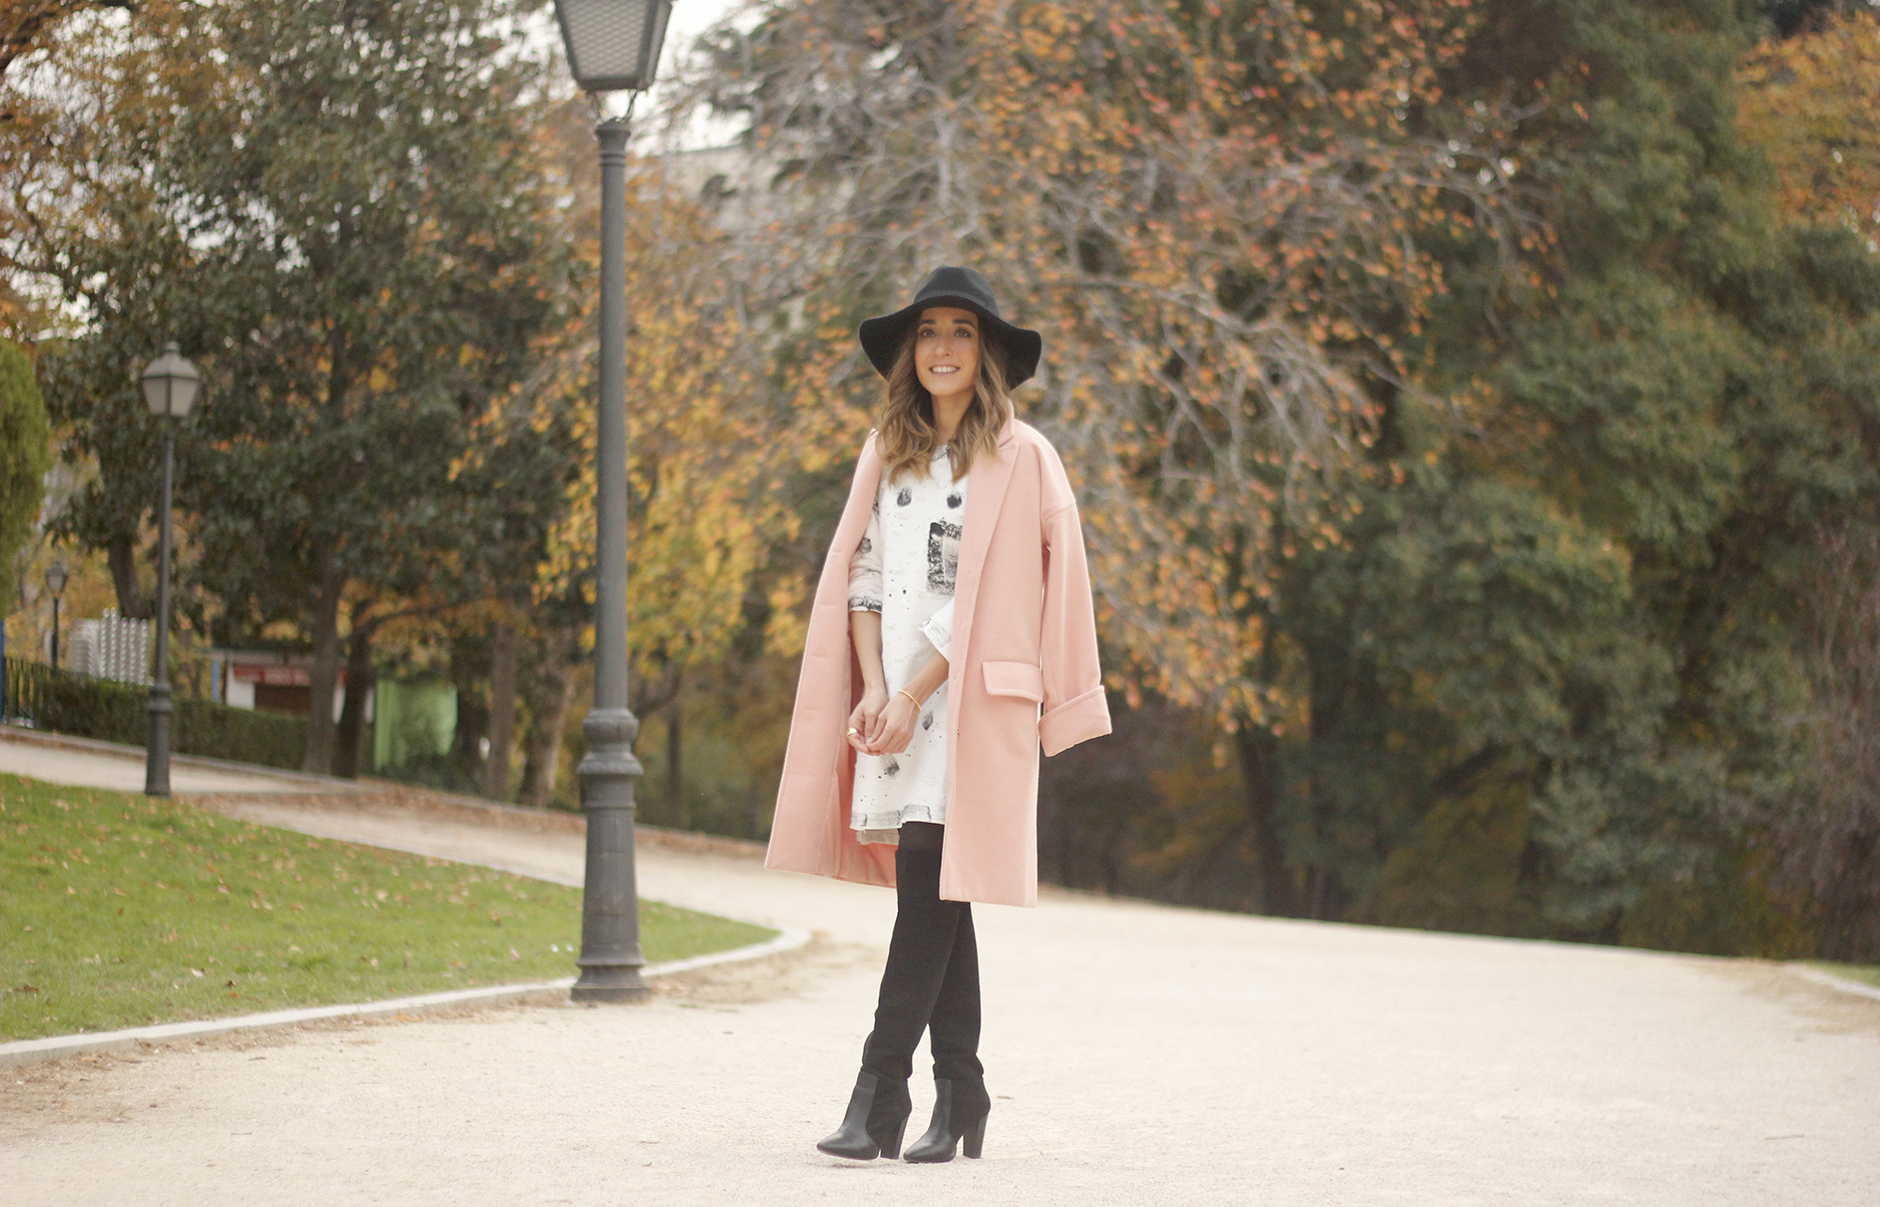 Black and White Dress Pink Coat Black Hat outfit style over the knees boots03